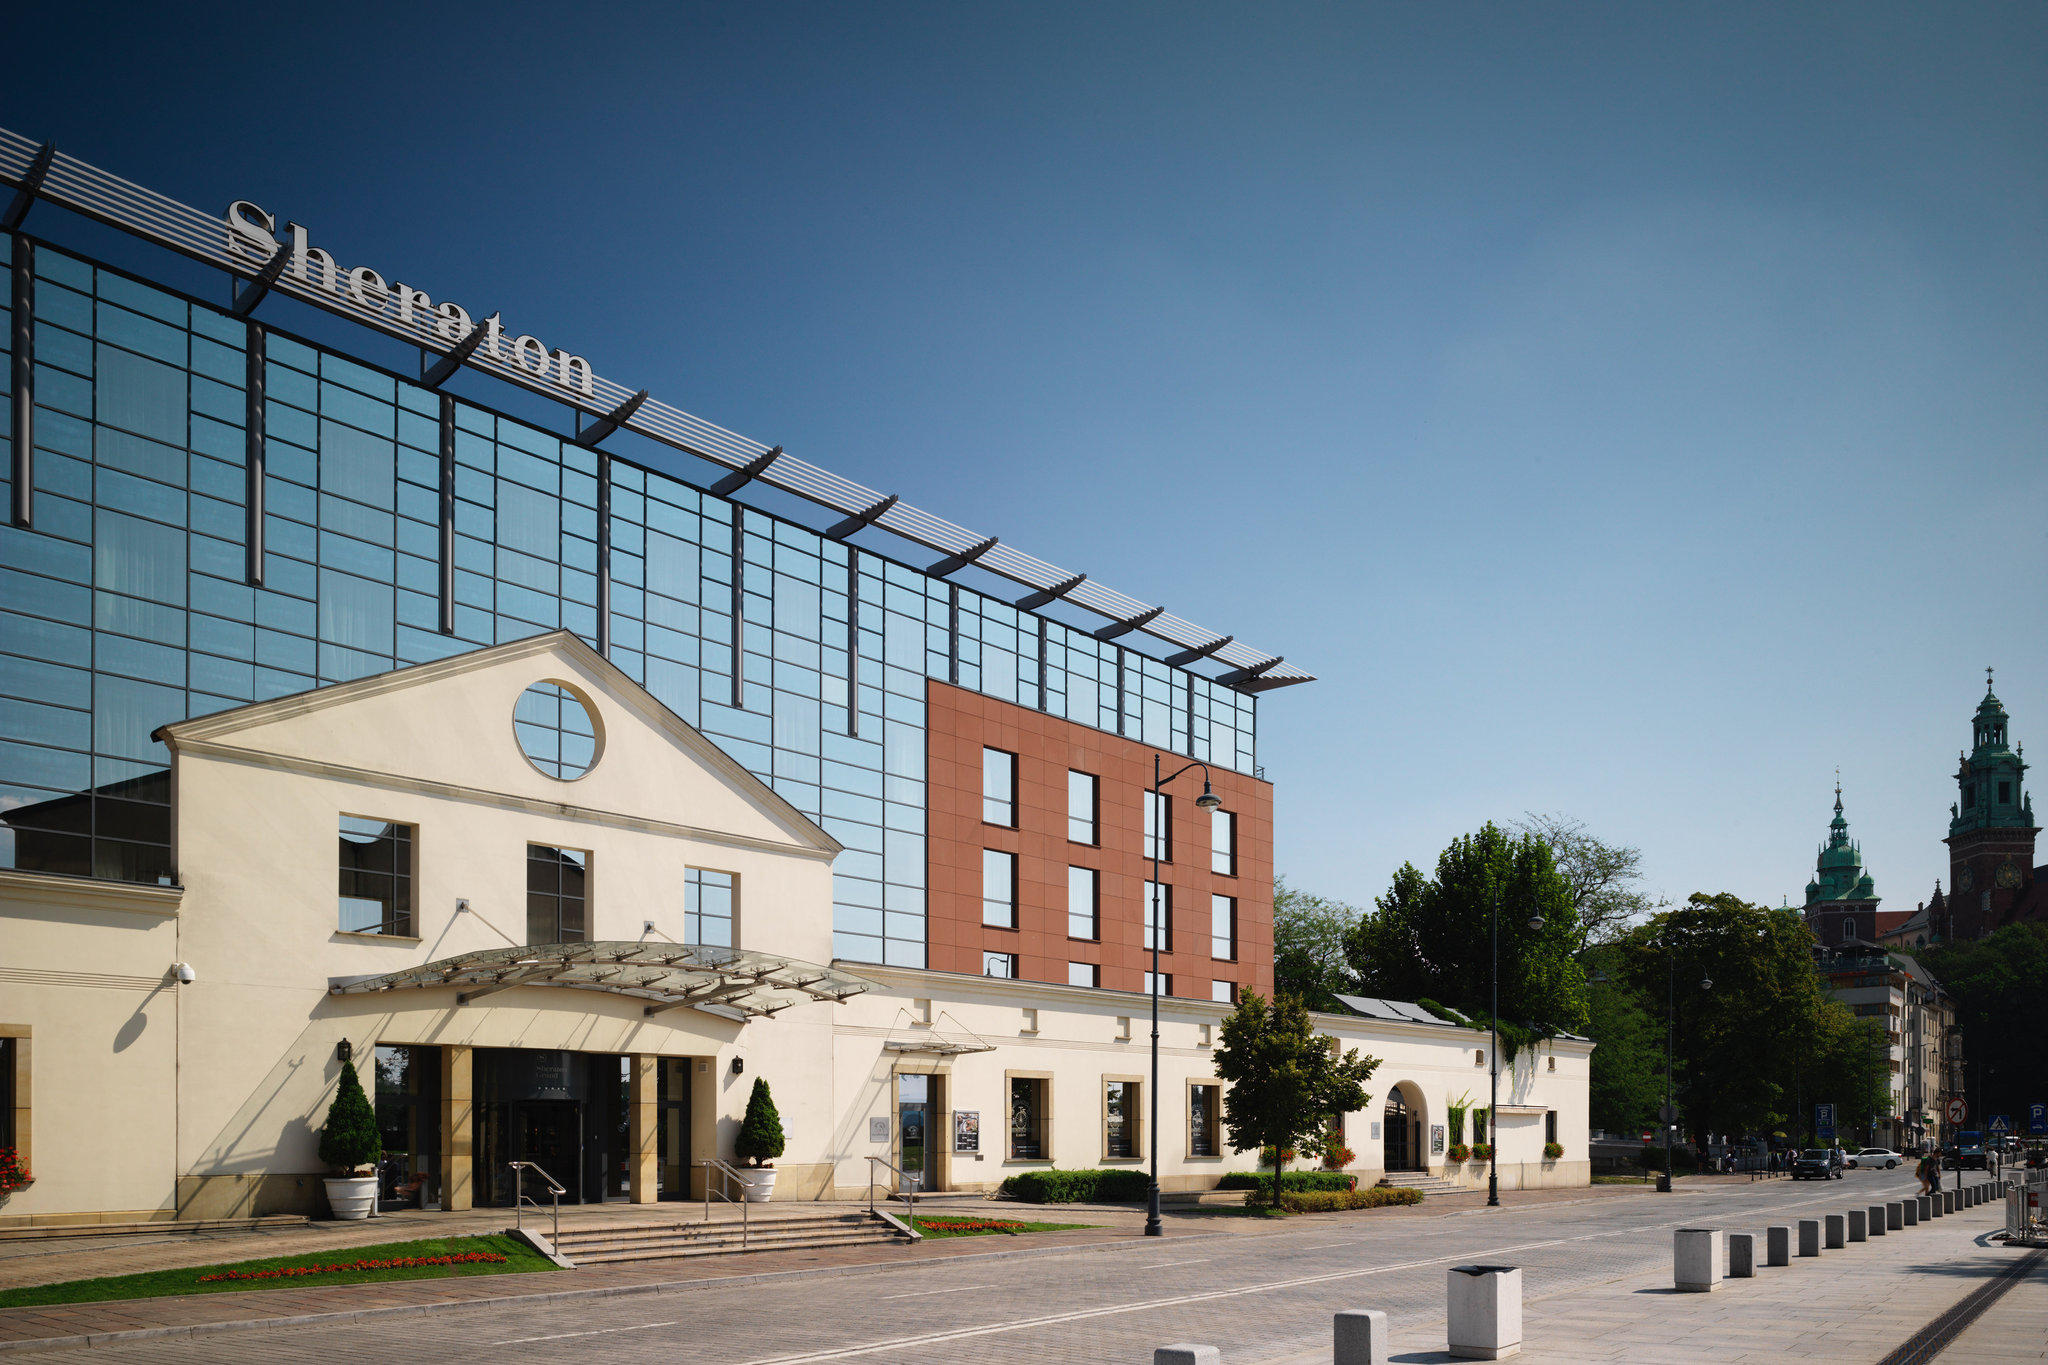 Images Sheraton Grand Krakow